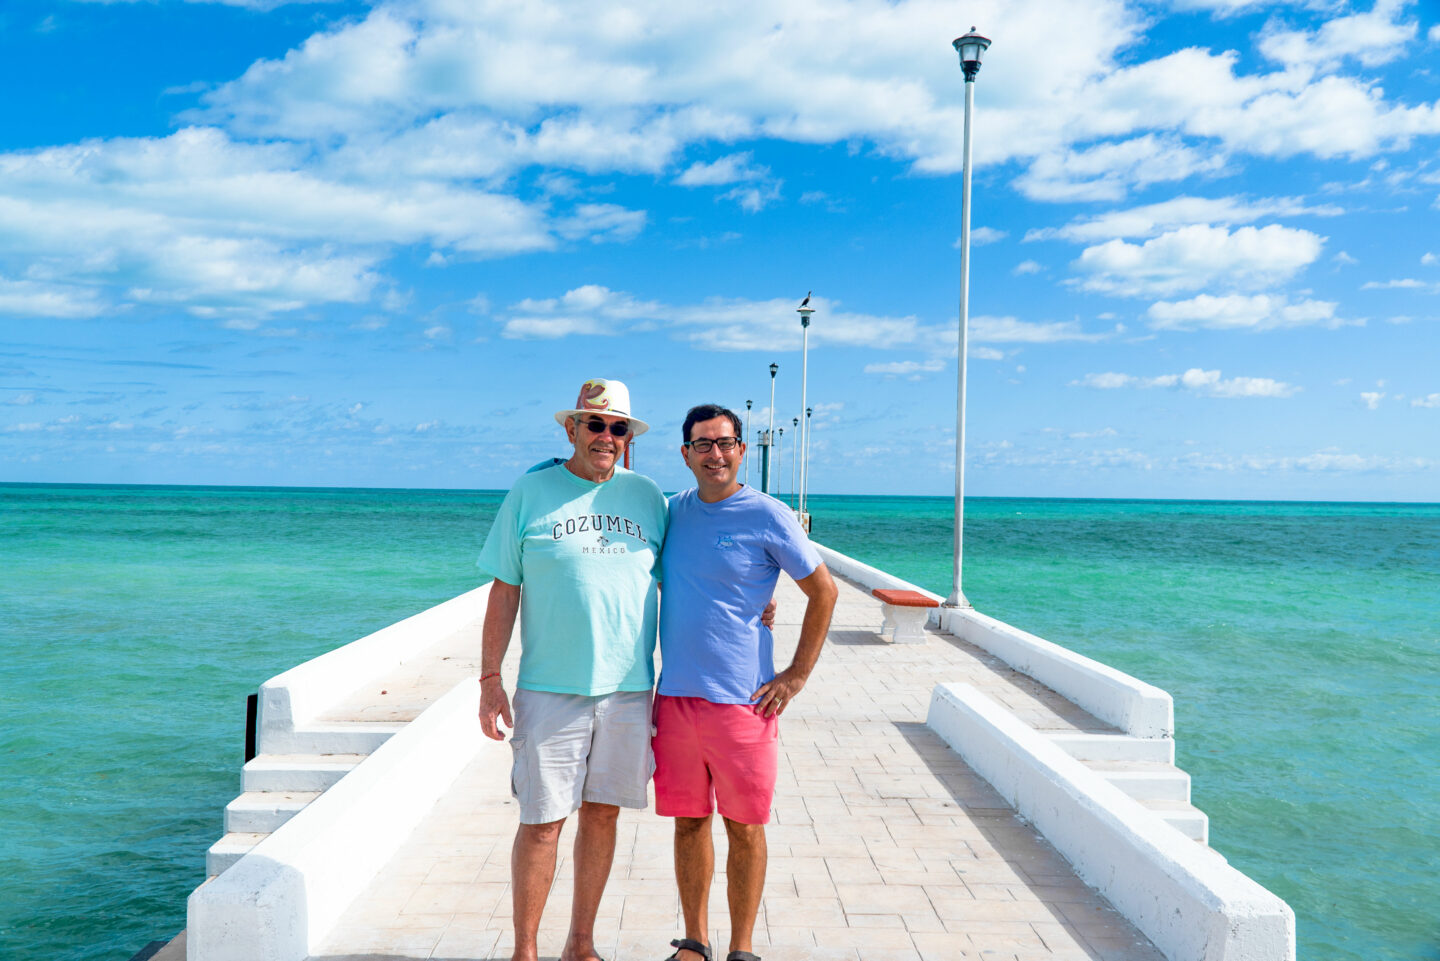 Allan and me at the main dock in El Cuyo. There are roughly 1,750 inhabitants in El Cuyo.